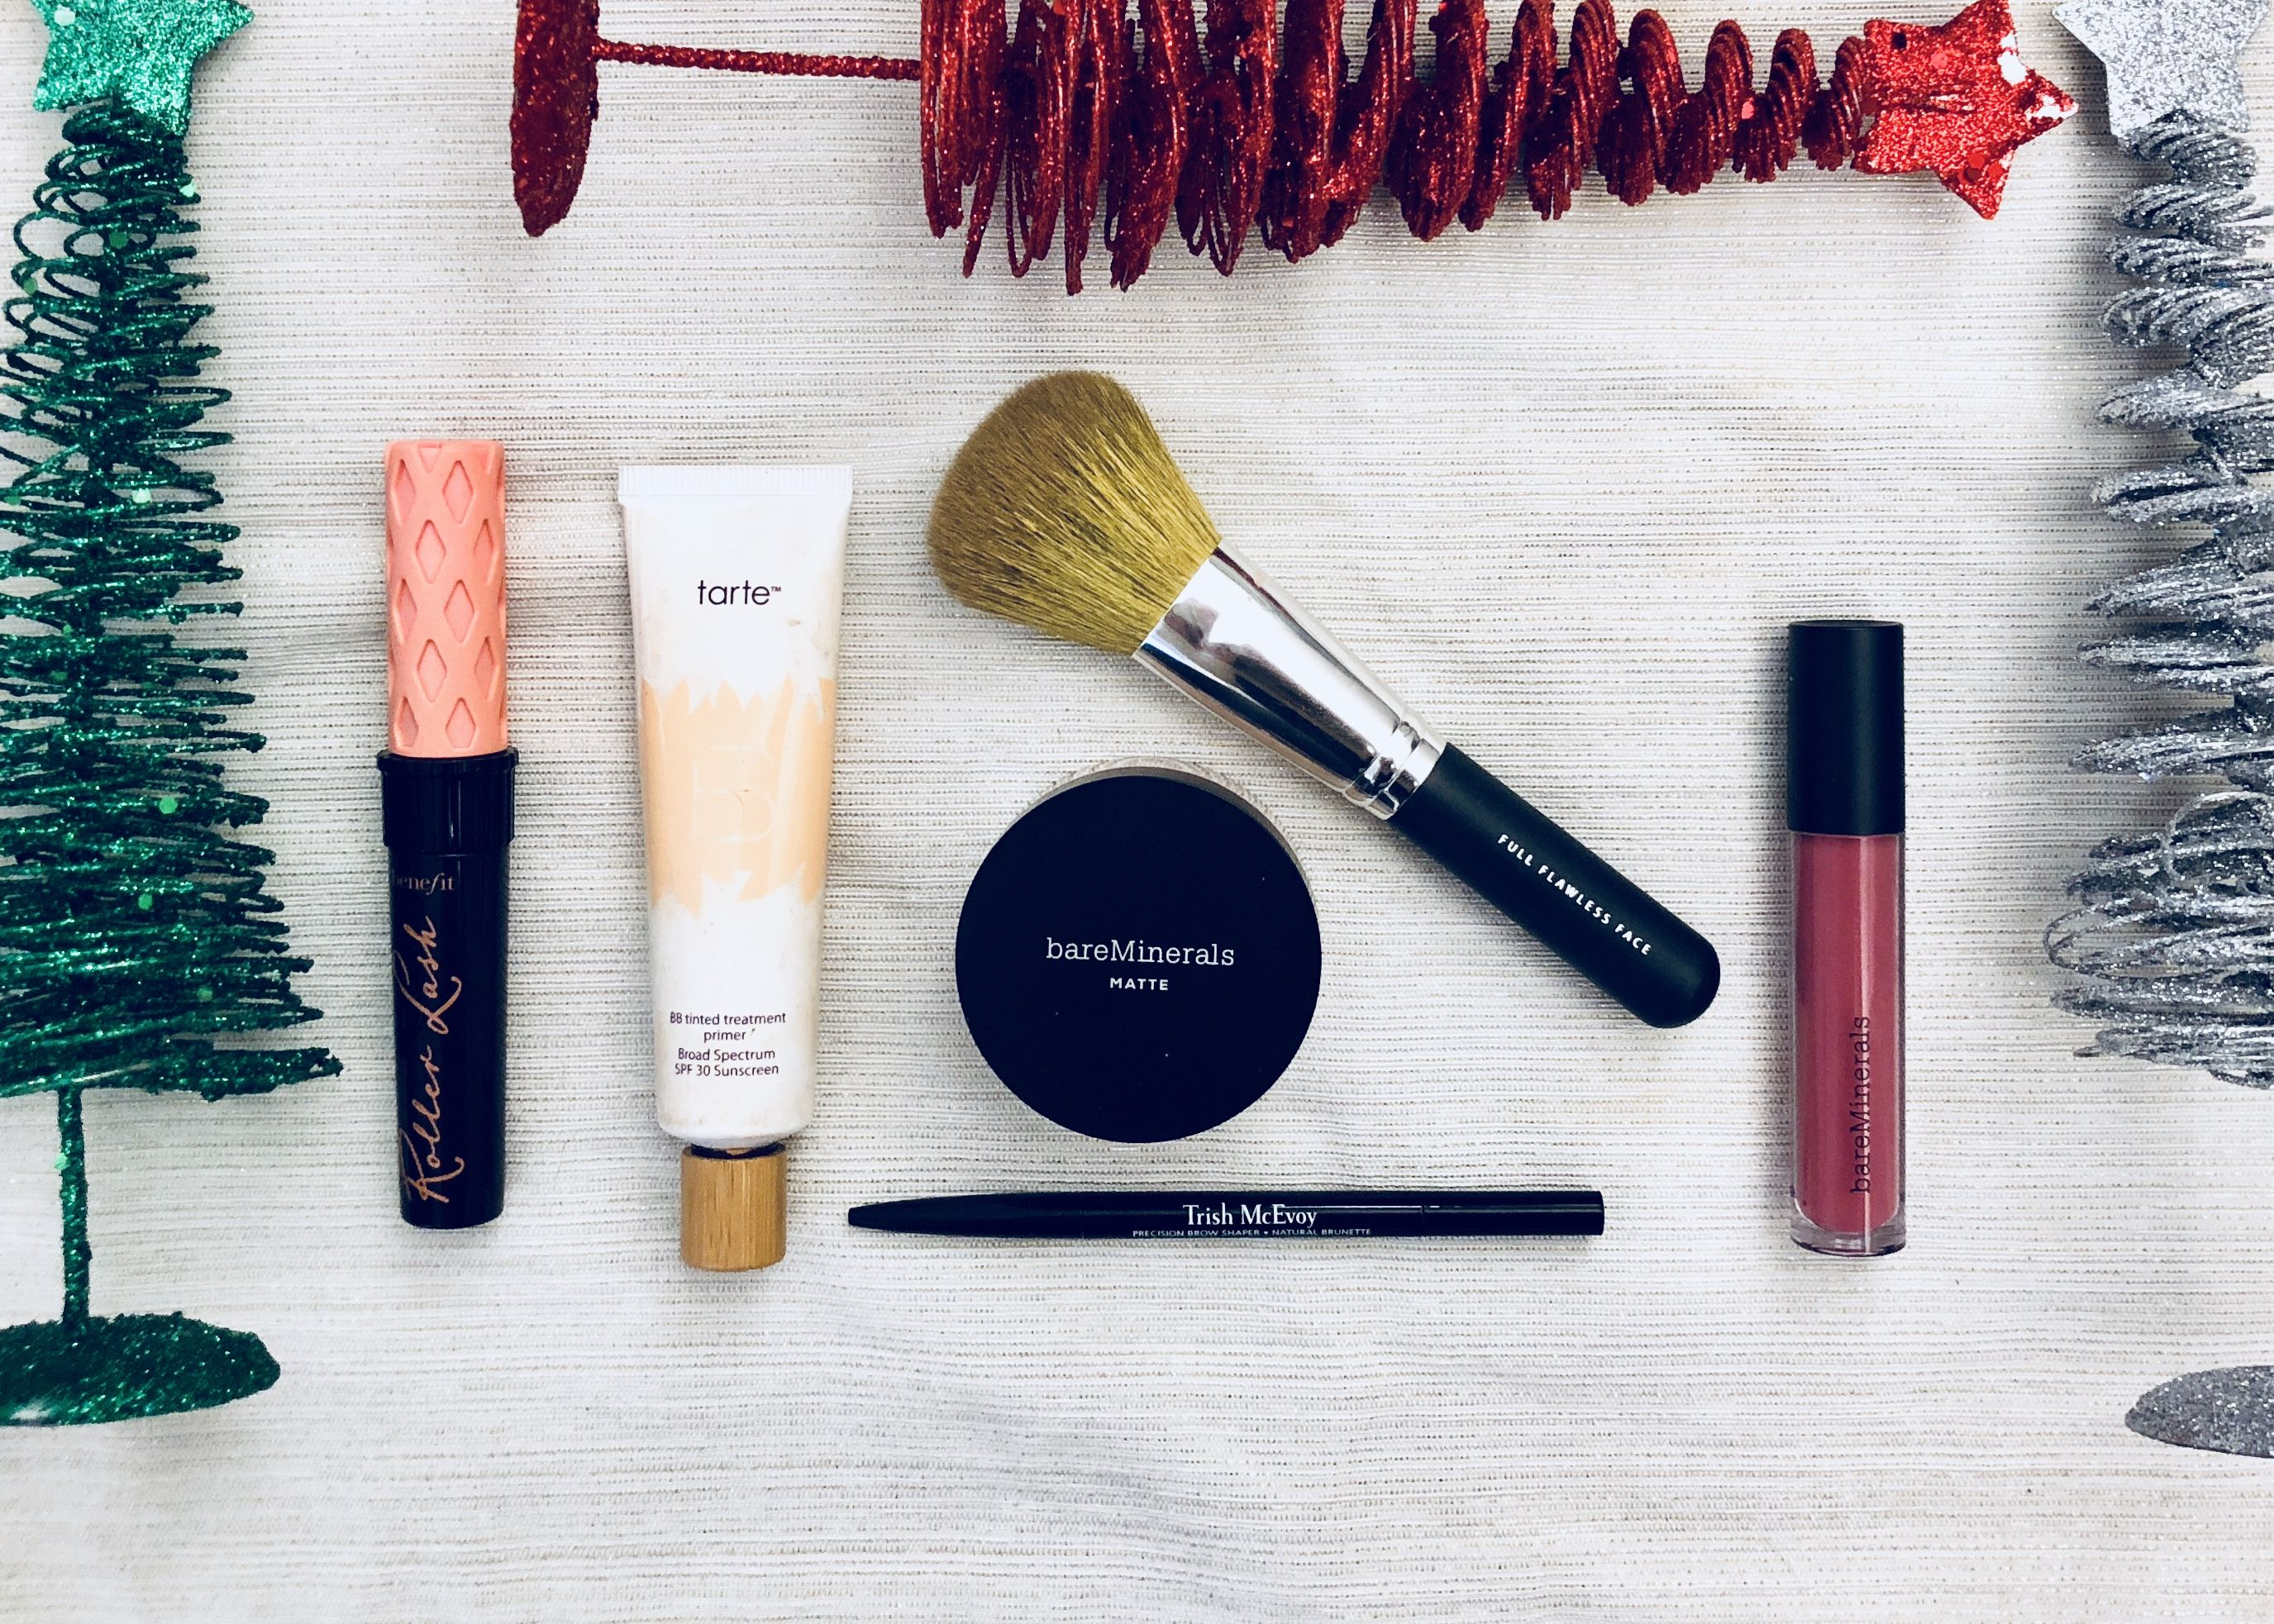 Make up must haves perfect for gifting this holiday season